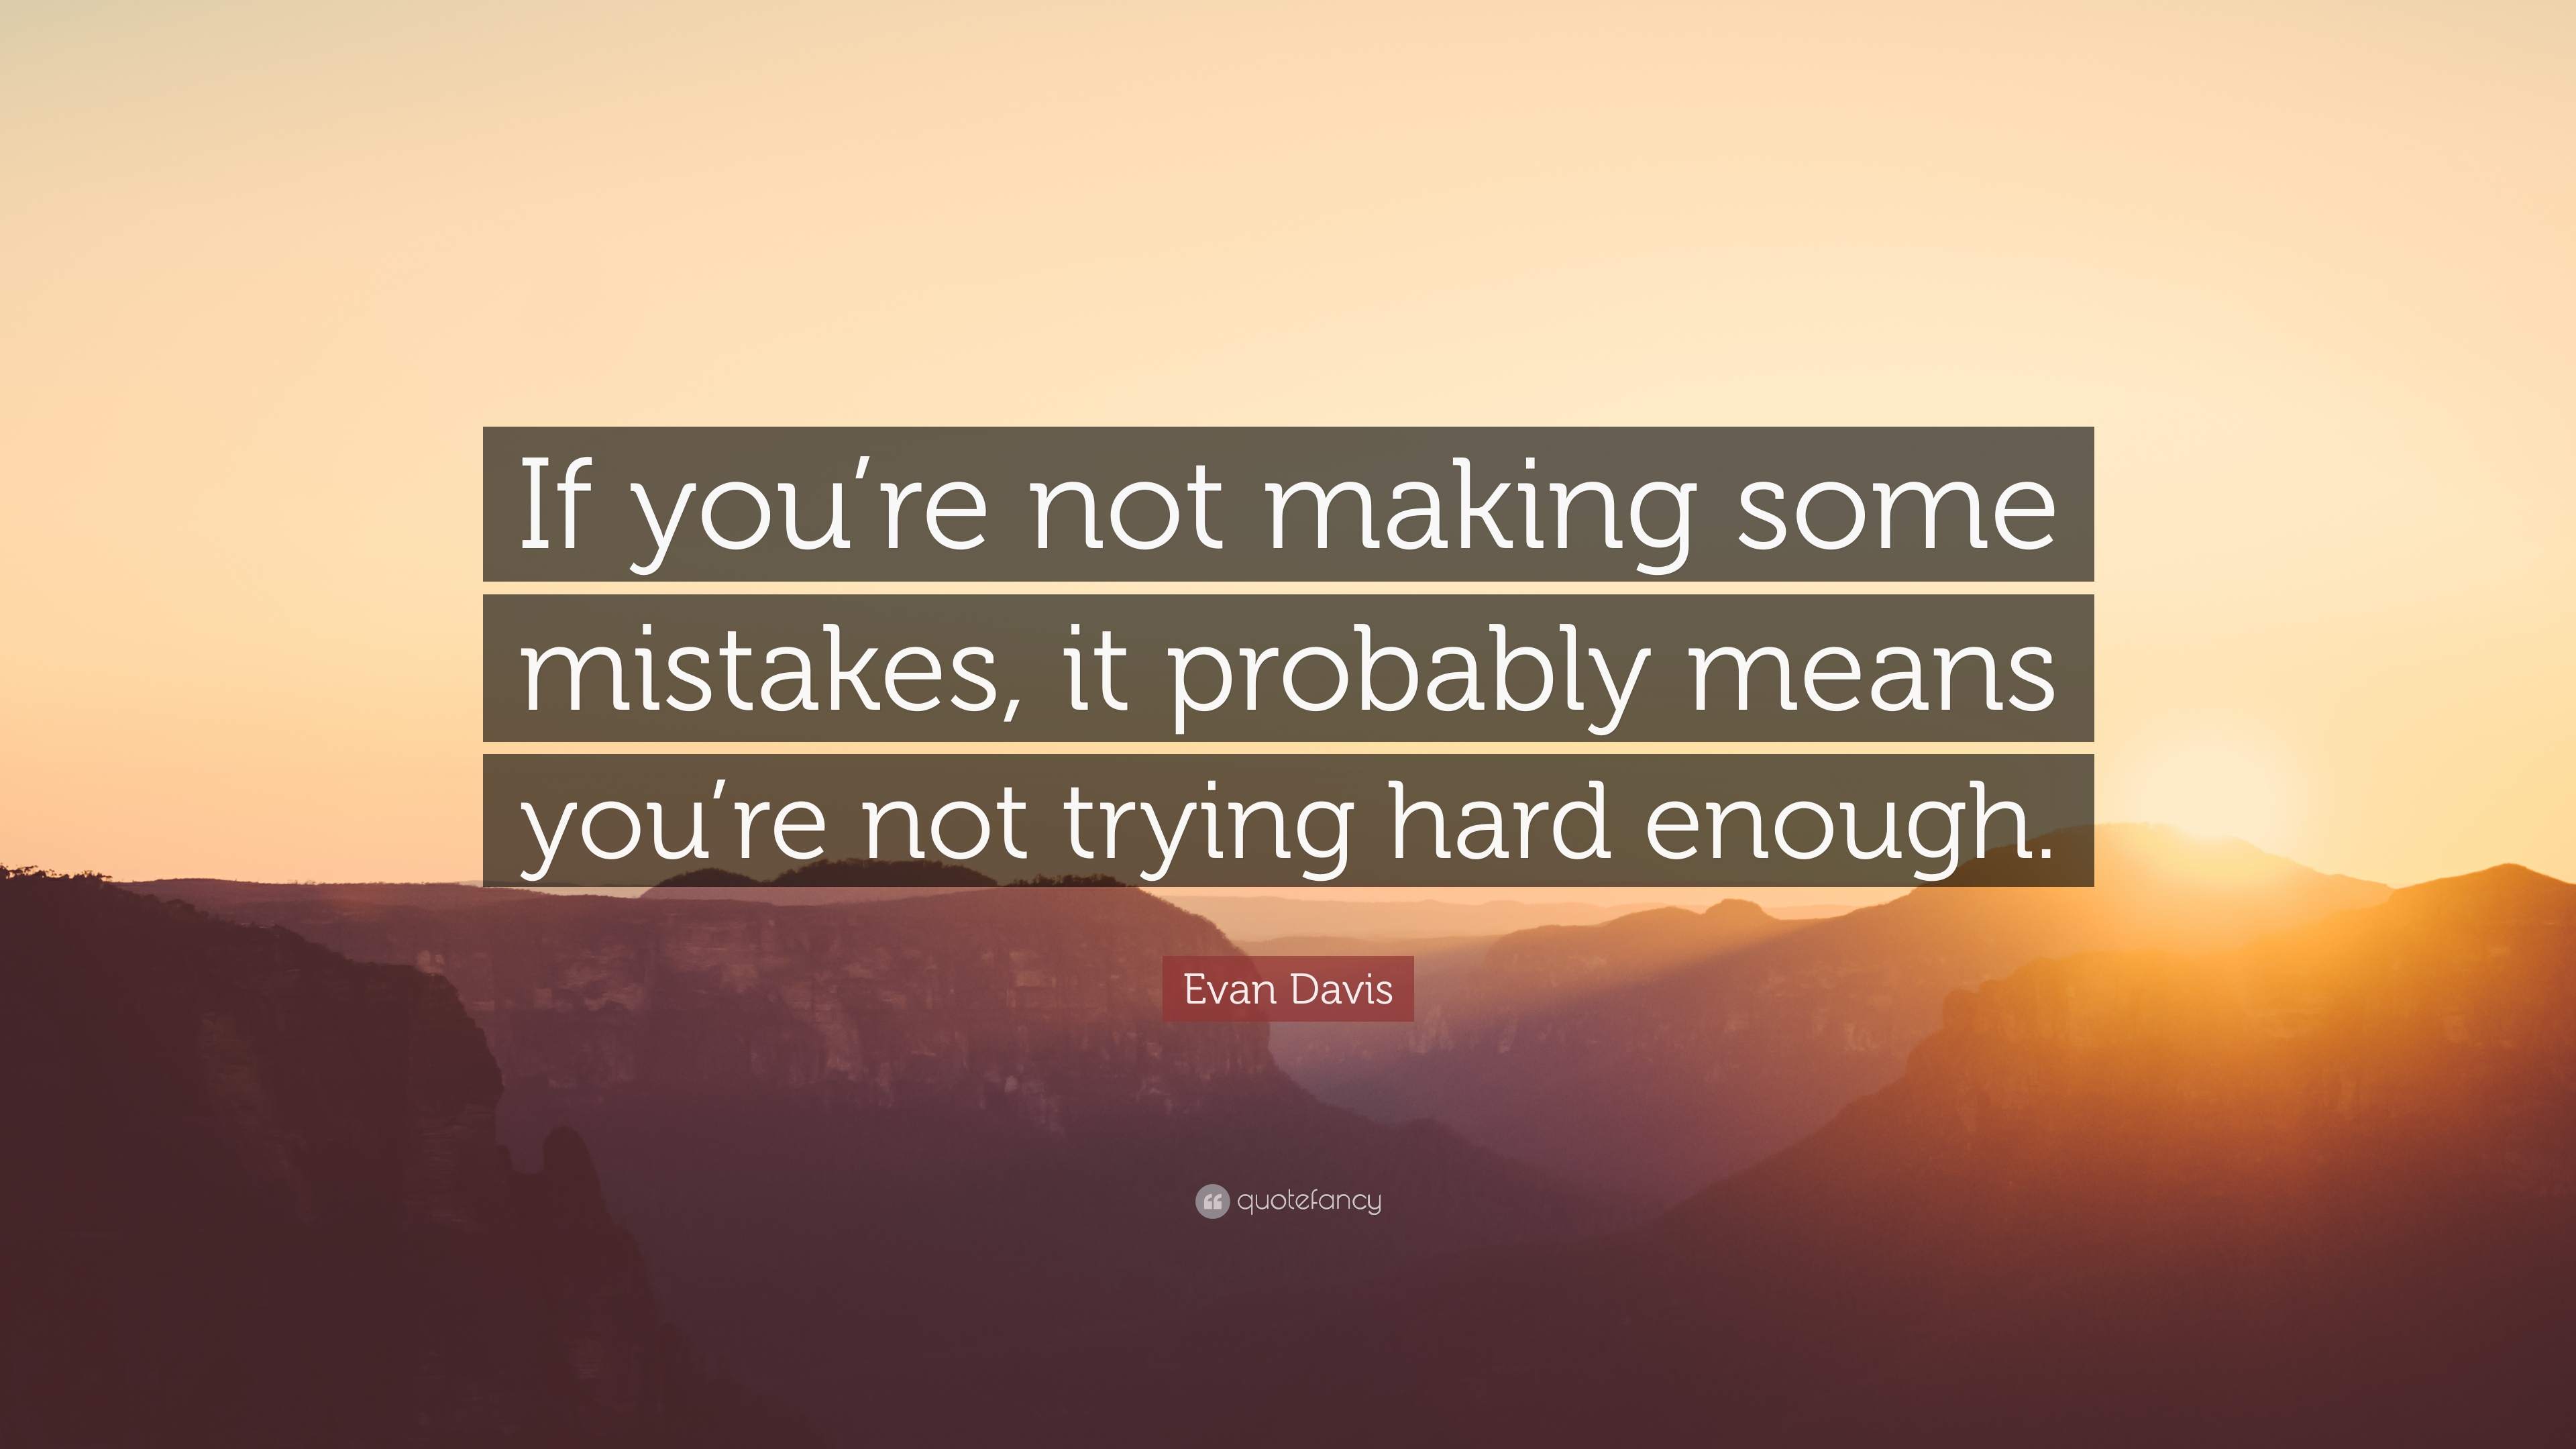 Image result for if you're not making mistakes you're not trying hard enough